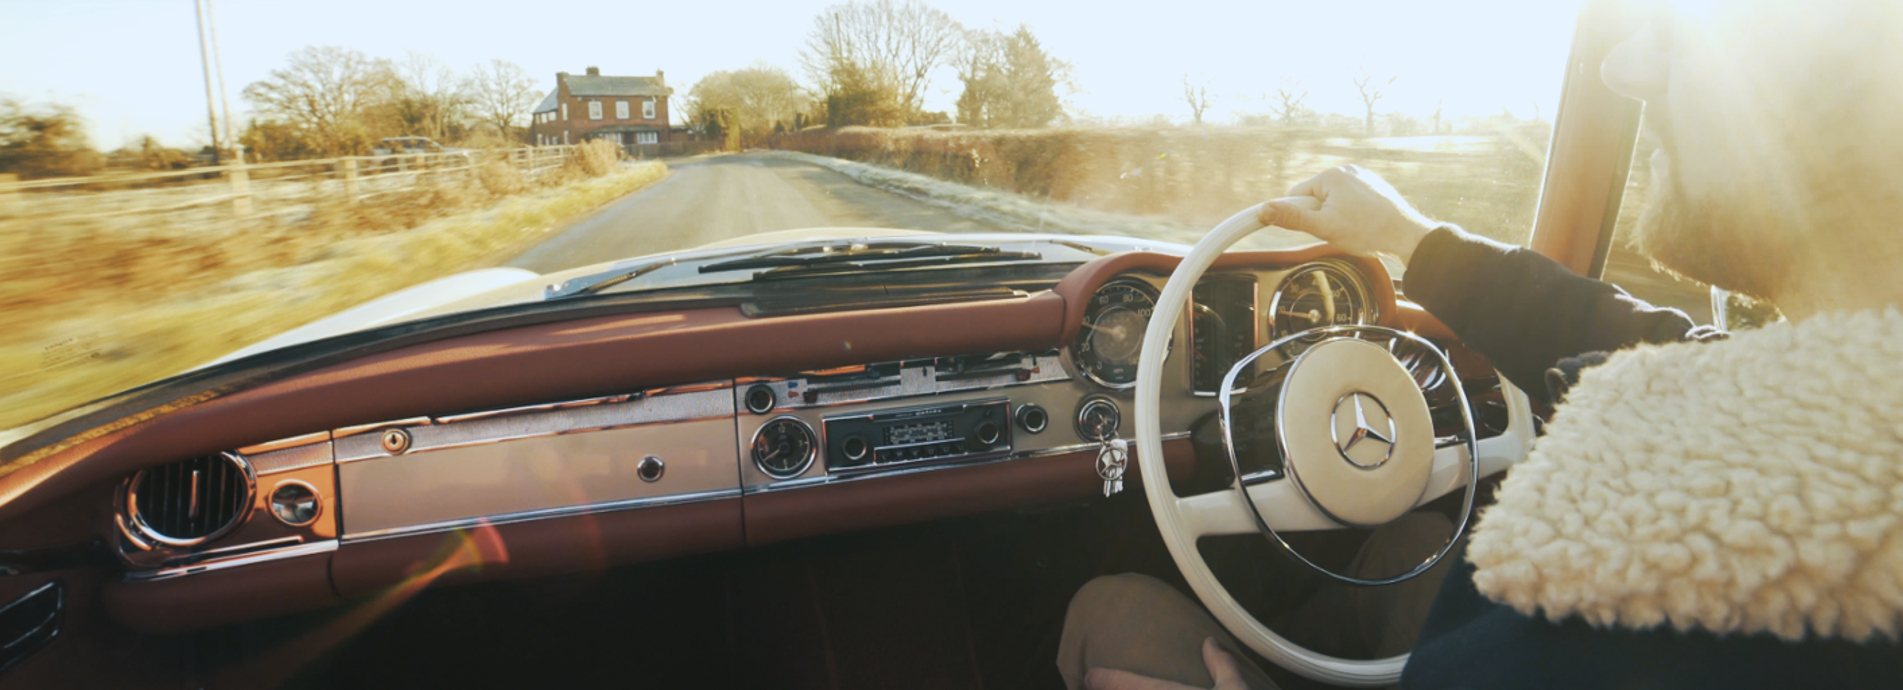 Interior of an SL Shop hire car shown whilst driving through the frosty countryside